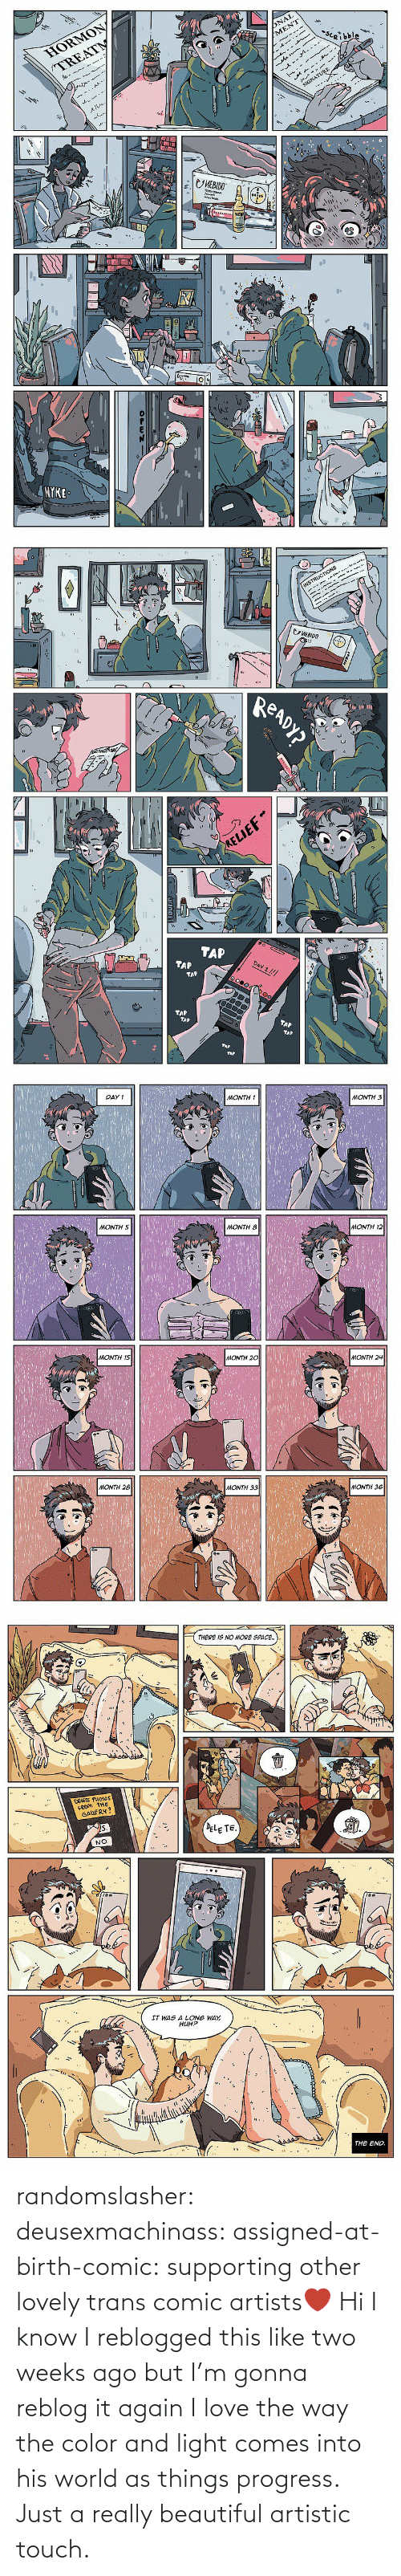 ago: randomslasher: deusexmachinass:  assigned-at-birth-comic: supporting other lovely trans comic artists❤  Hi I know I reblogged this like two weeks ago but I'm gonna reblog it again  I love the way the color and light comes into his world as things progress. Just a really beautiful artistic touch.